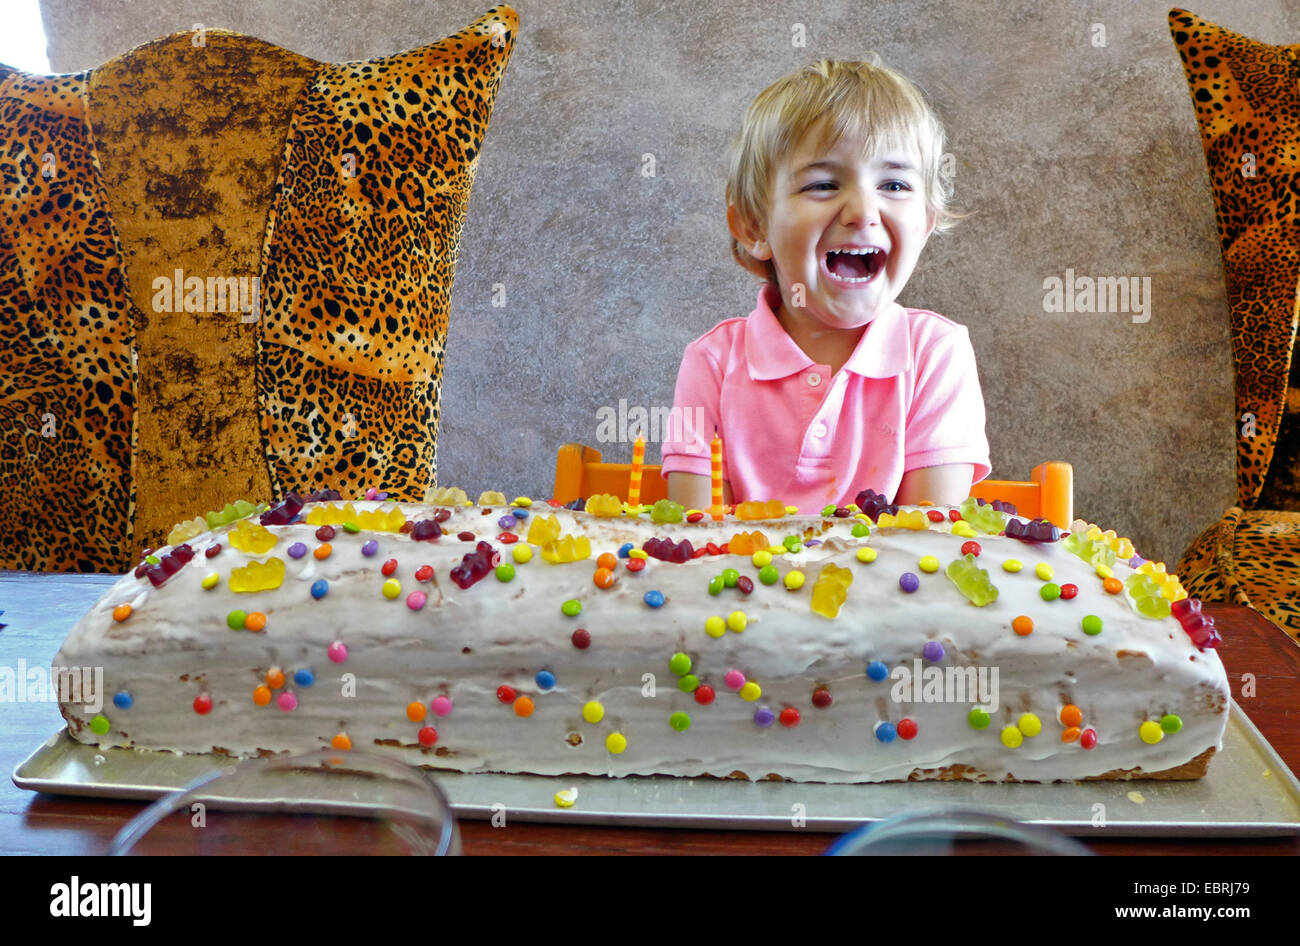 Pleasant Giant Birthday Cake Stock Photos Giant Birthday Cake Stock Funny Birthday Cards Online Fluifree Goldxyz